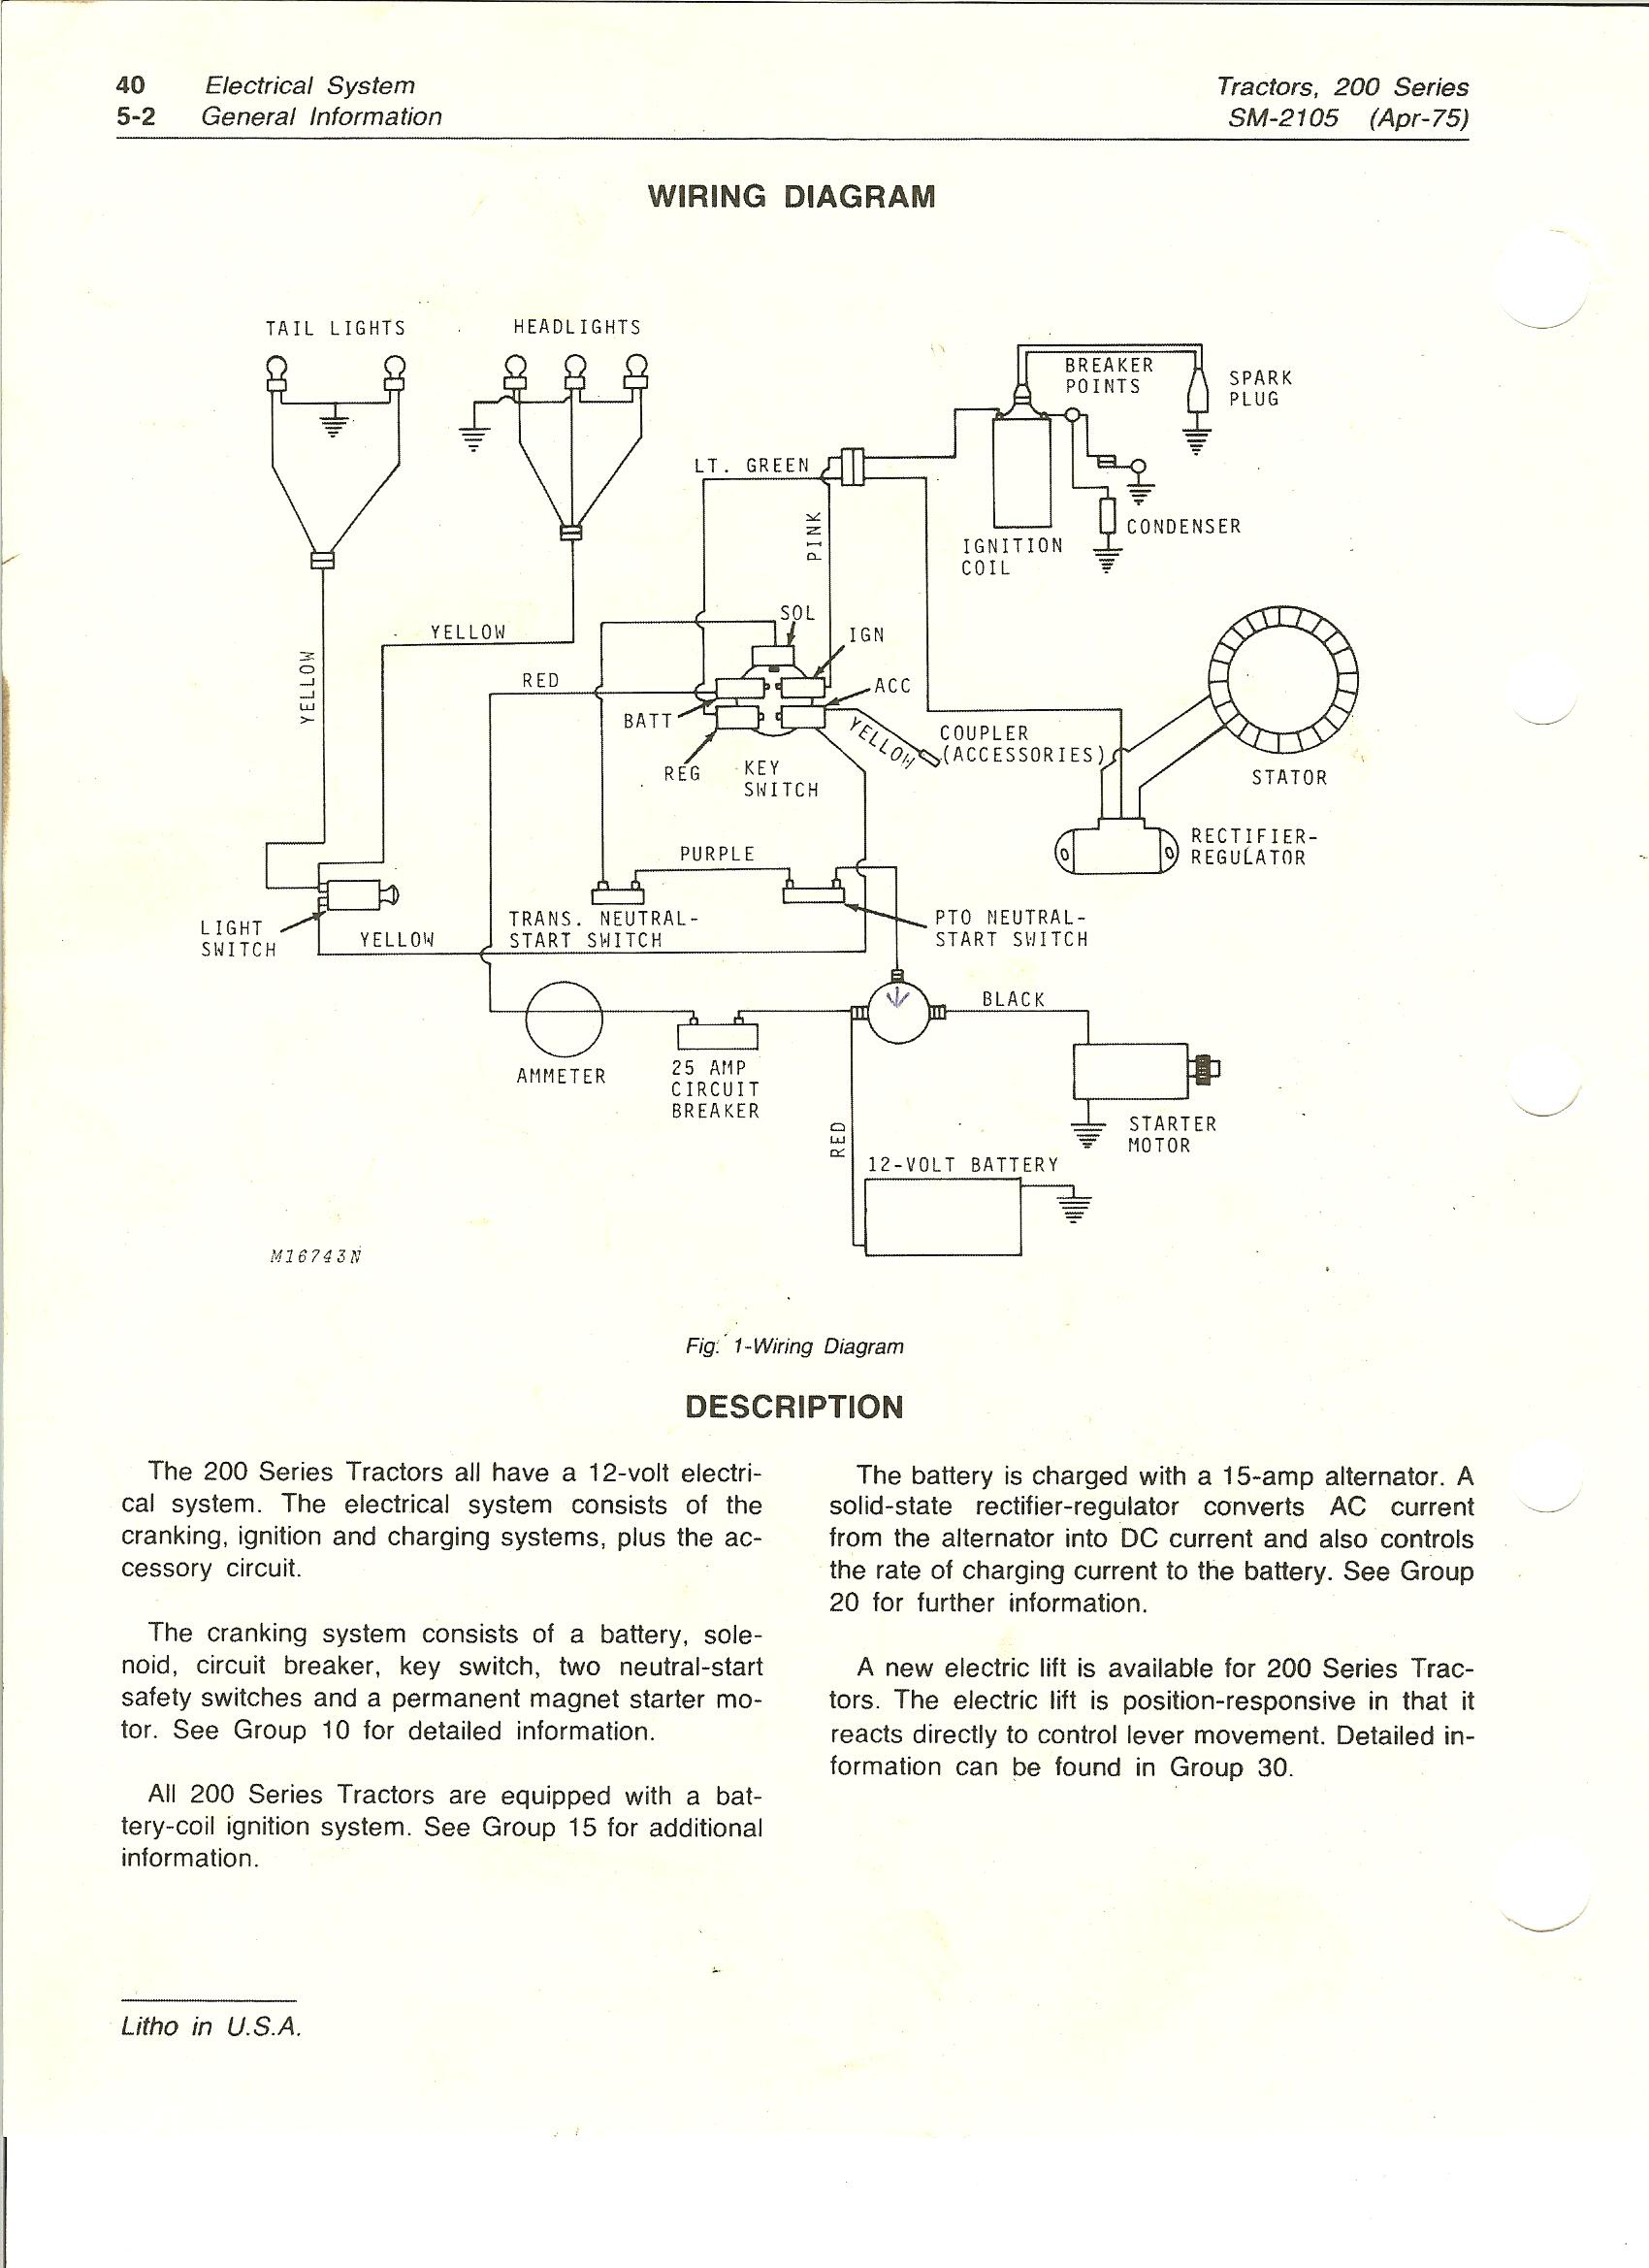 Wiring Diagram For John Deere 345